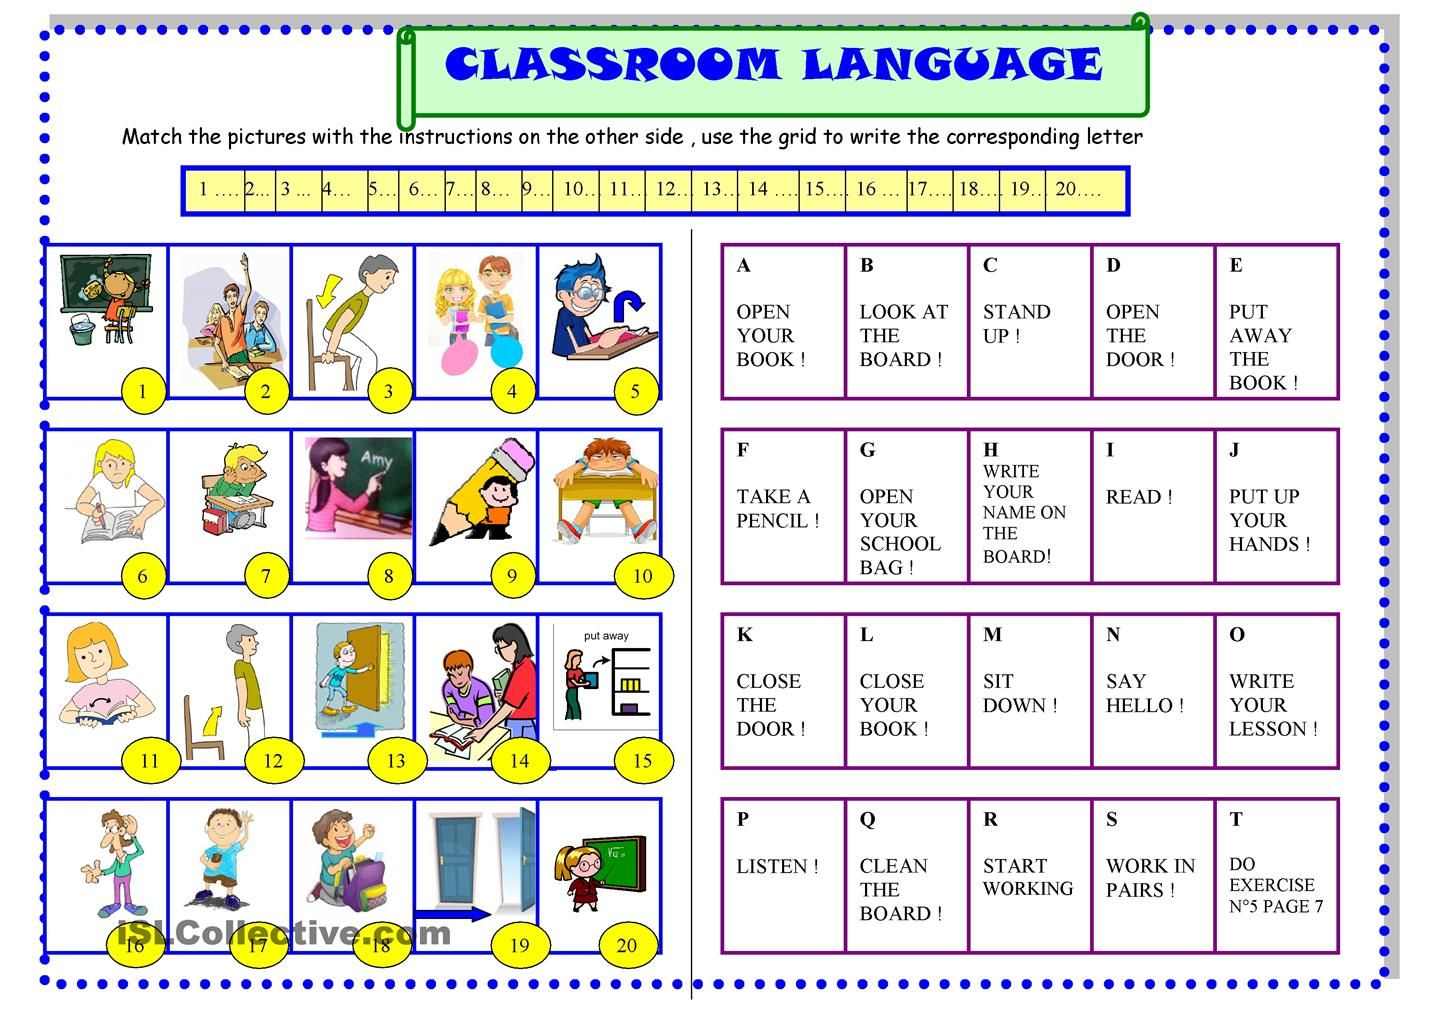 Classroom Language For Beginners Esl Printable Worksheet Of The Day By Sylviepieddaignel On